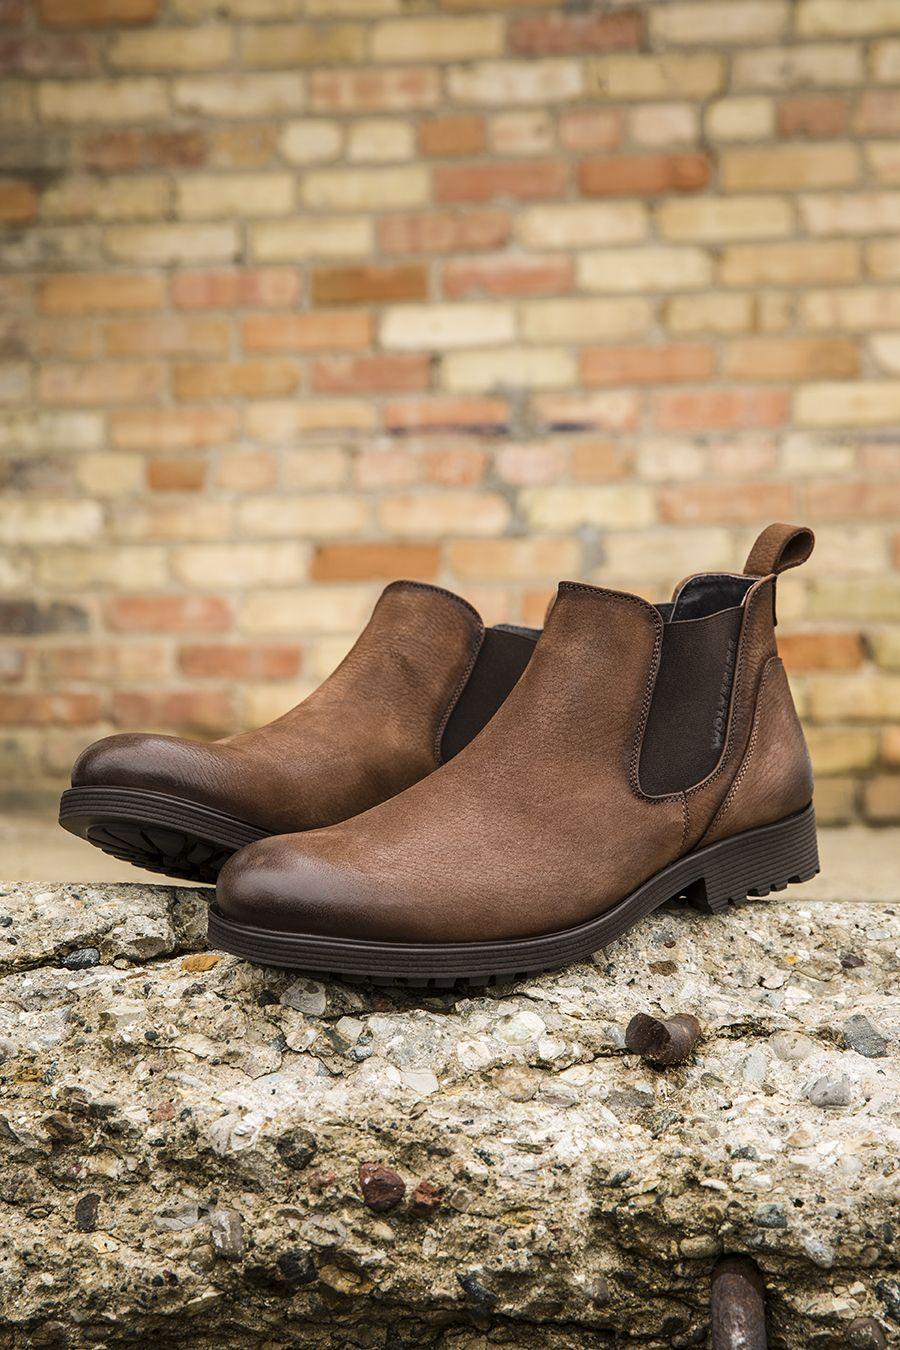 6deaef3b014 Wolverine Eckins: a classic men's pull-on boot paired with an ...